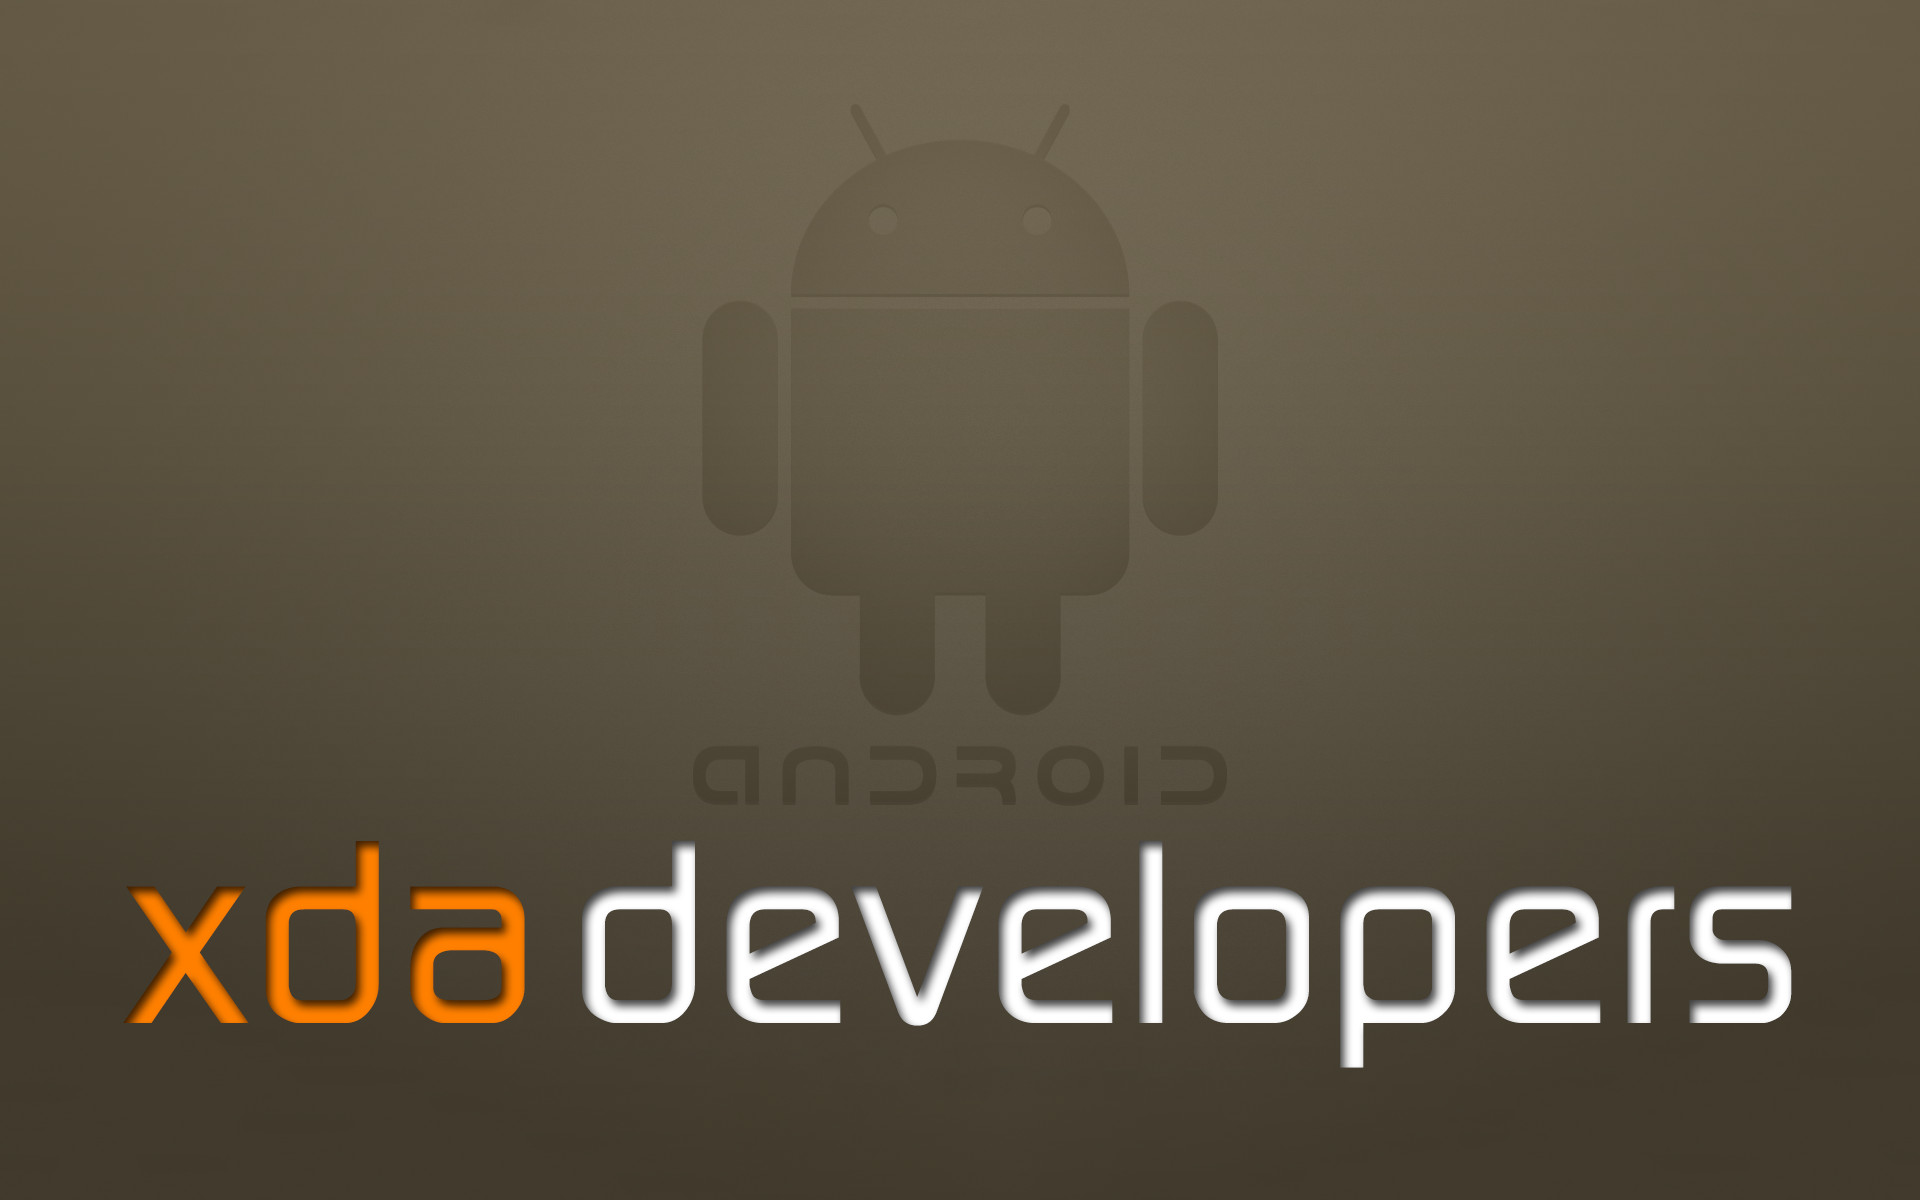 Android xda developers full HD wallpaper by divaksh 1920x1200